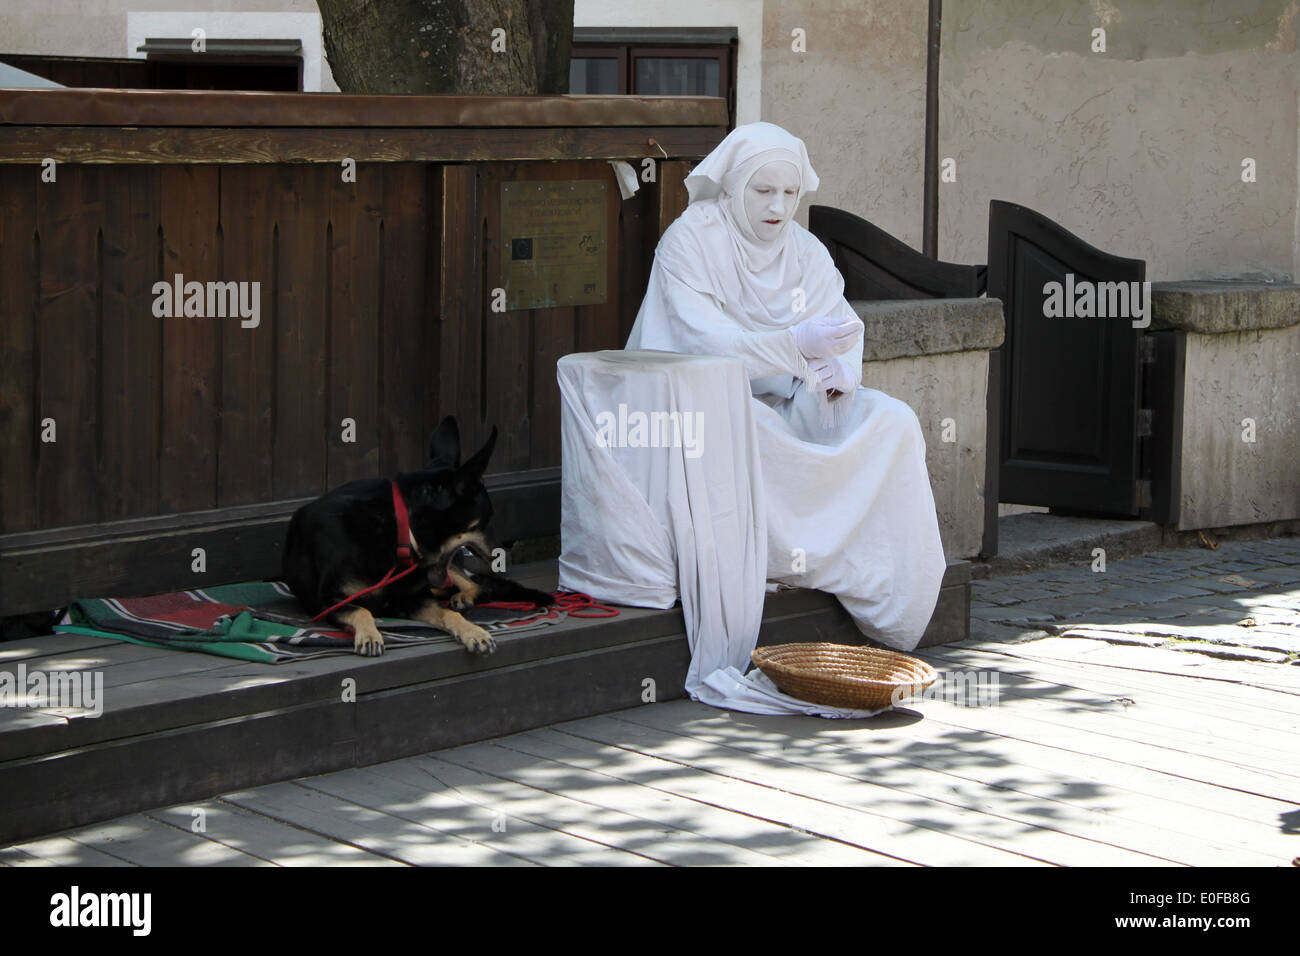 A living-statue street performer and his dog resting between acts. - Stock Image